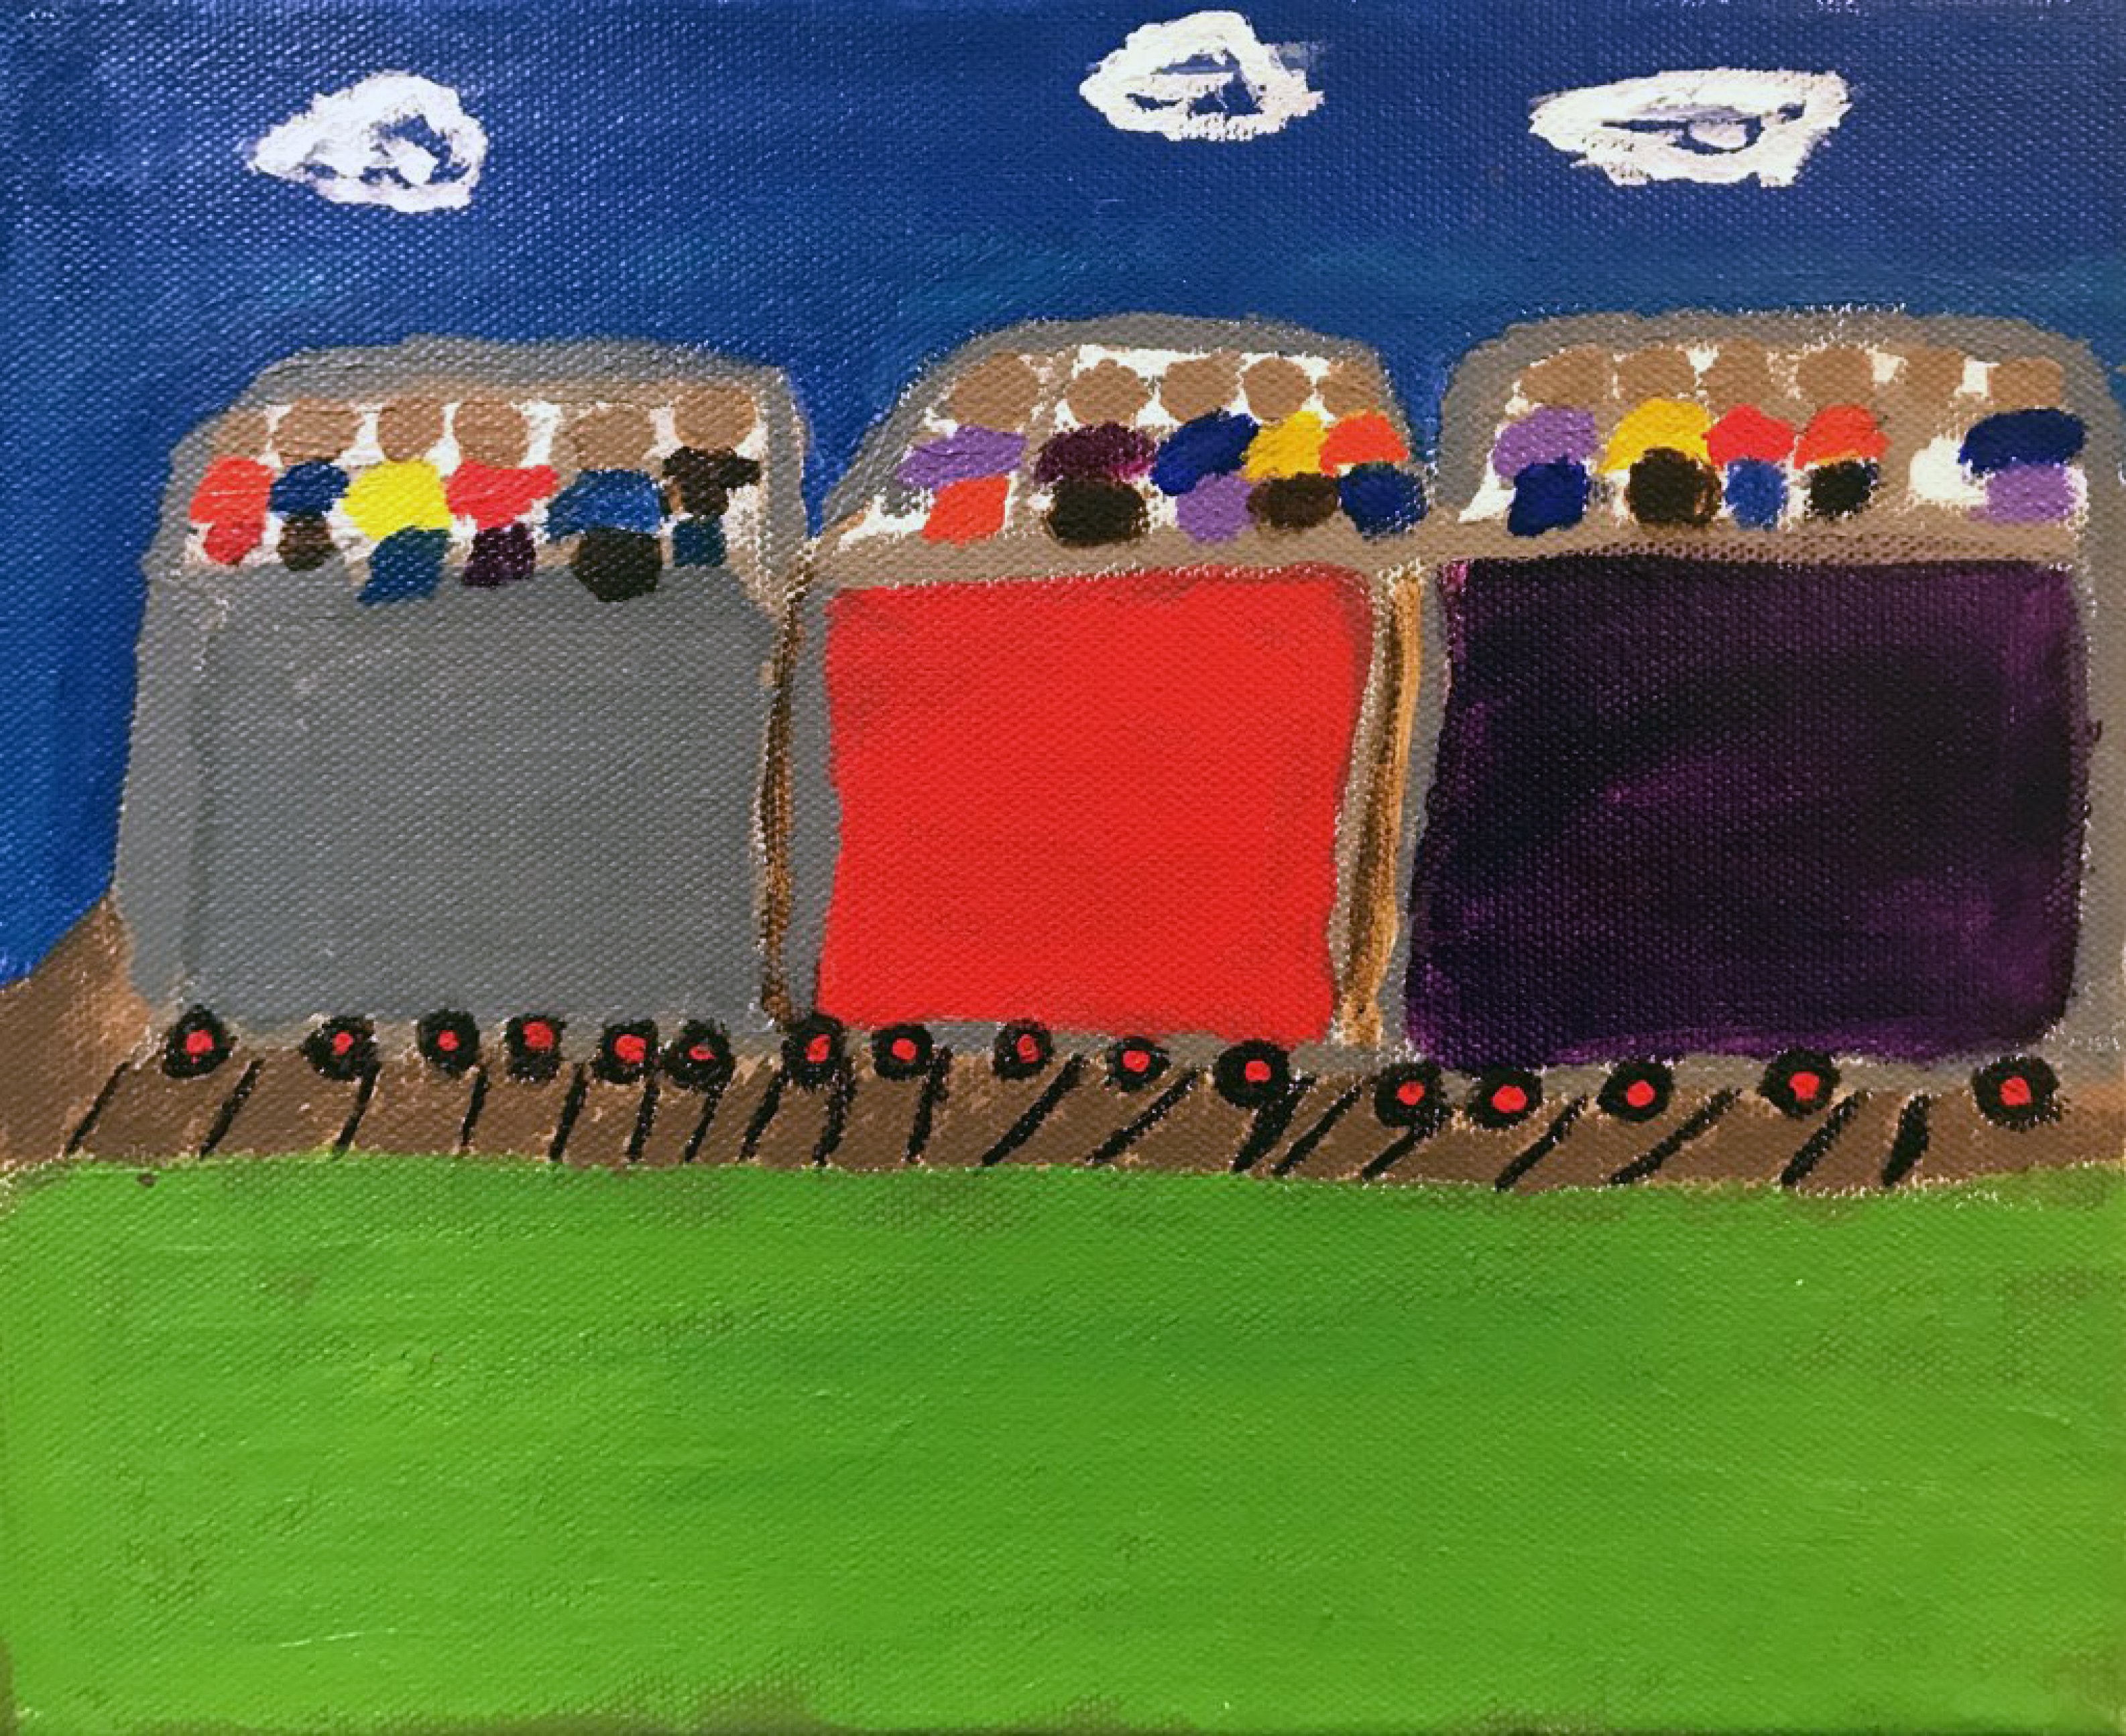 A painting with three train cars with small figures on top of the cars.